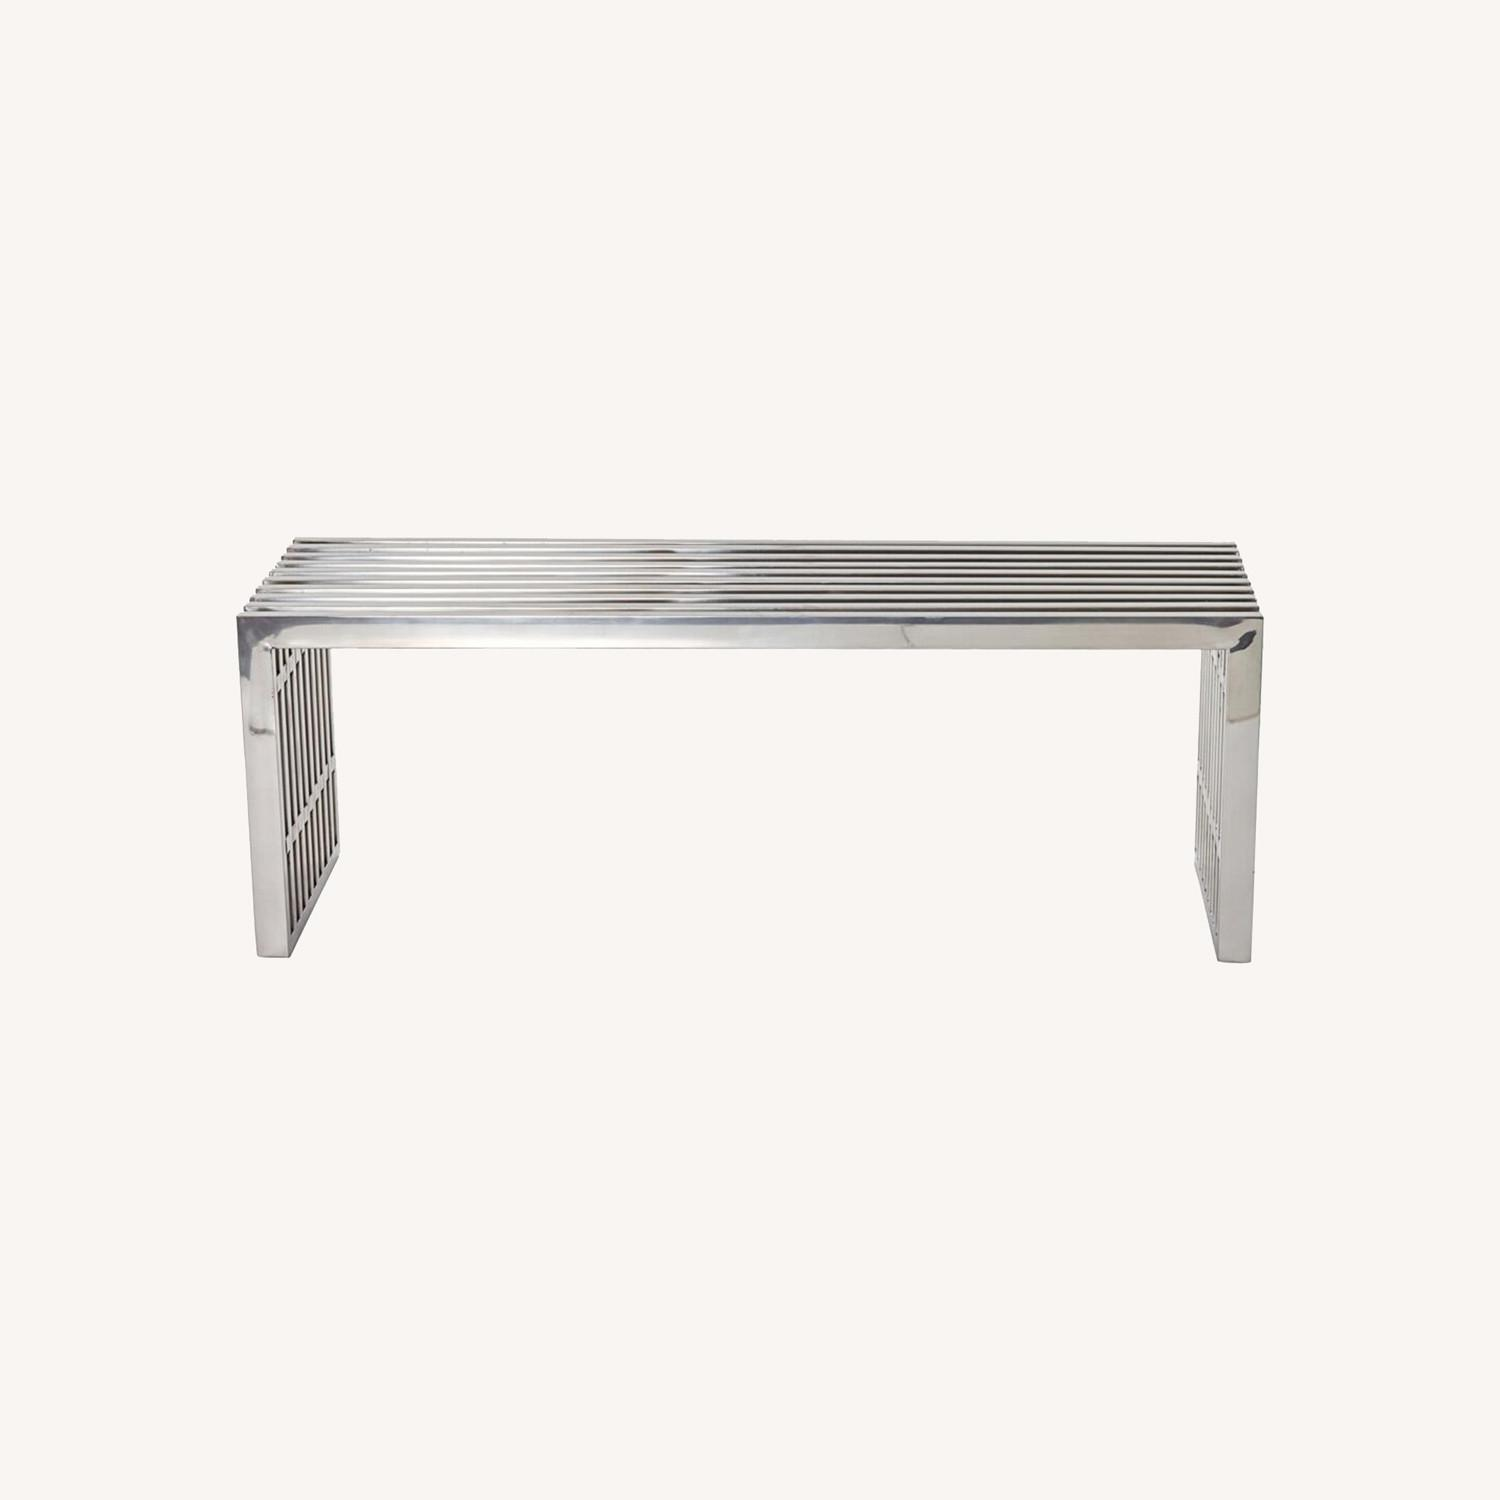 Bench In Silver Medium Stainless Steel Finish - image-5